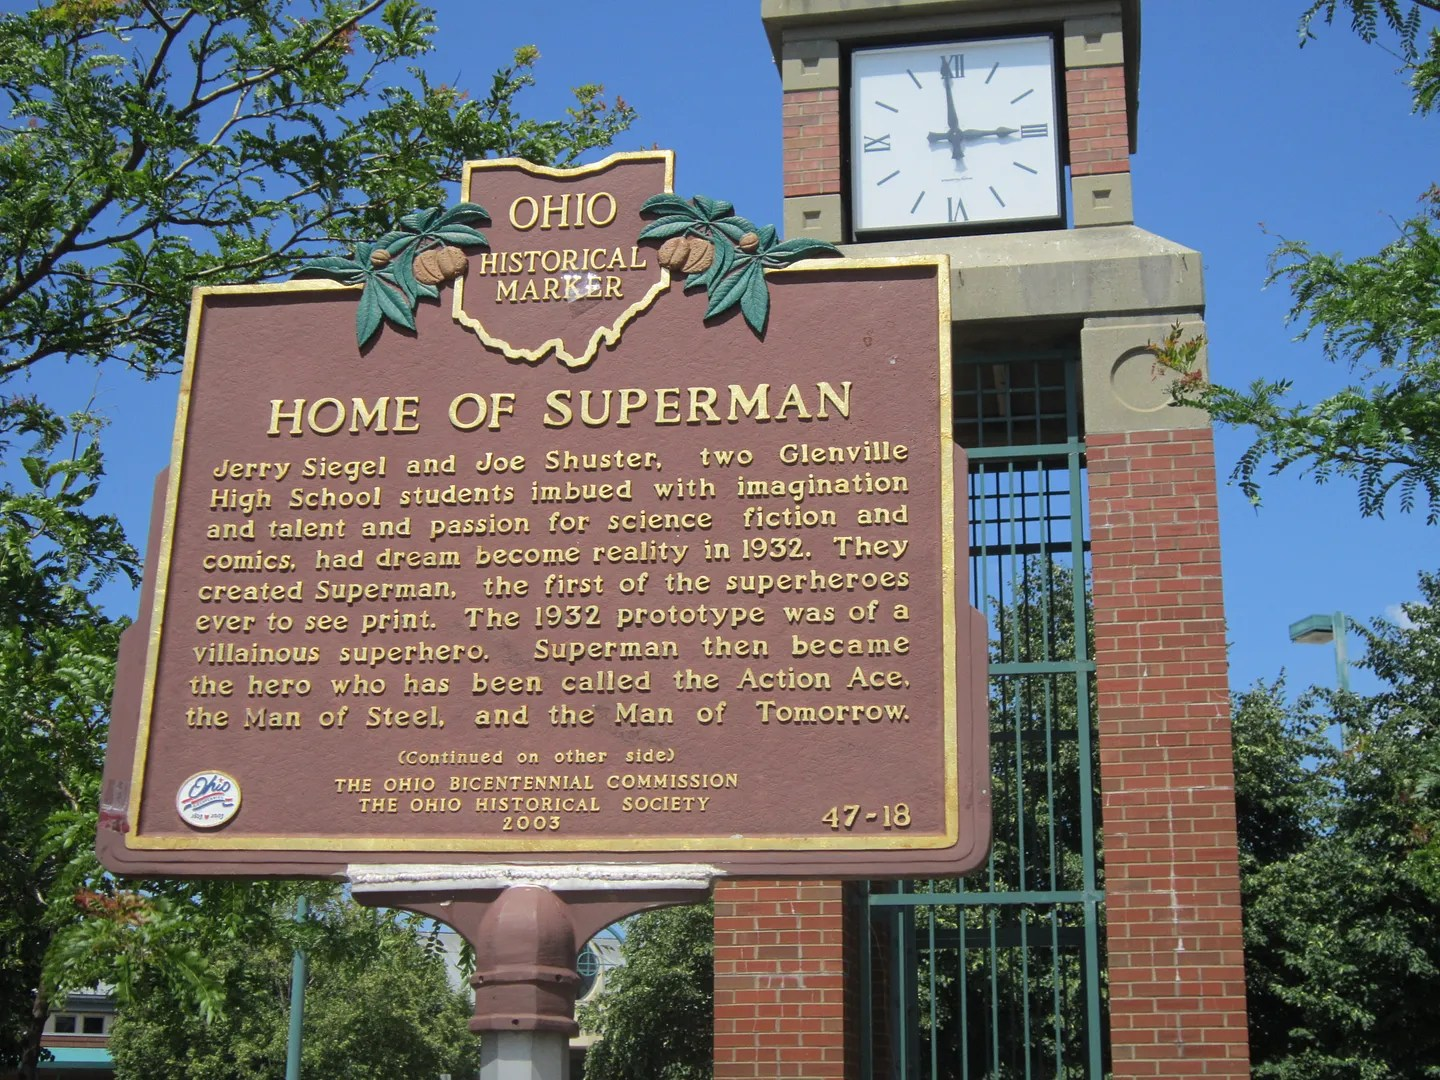 Home of Superman plaque, Cleveland